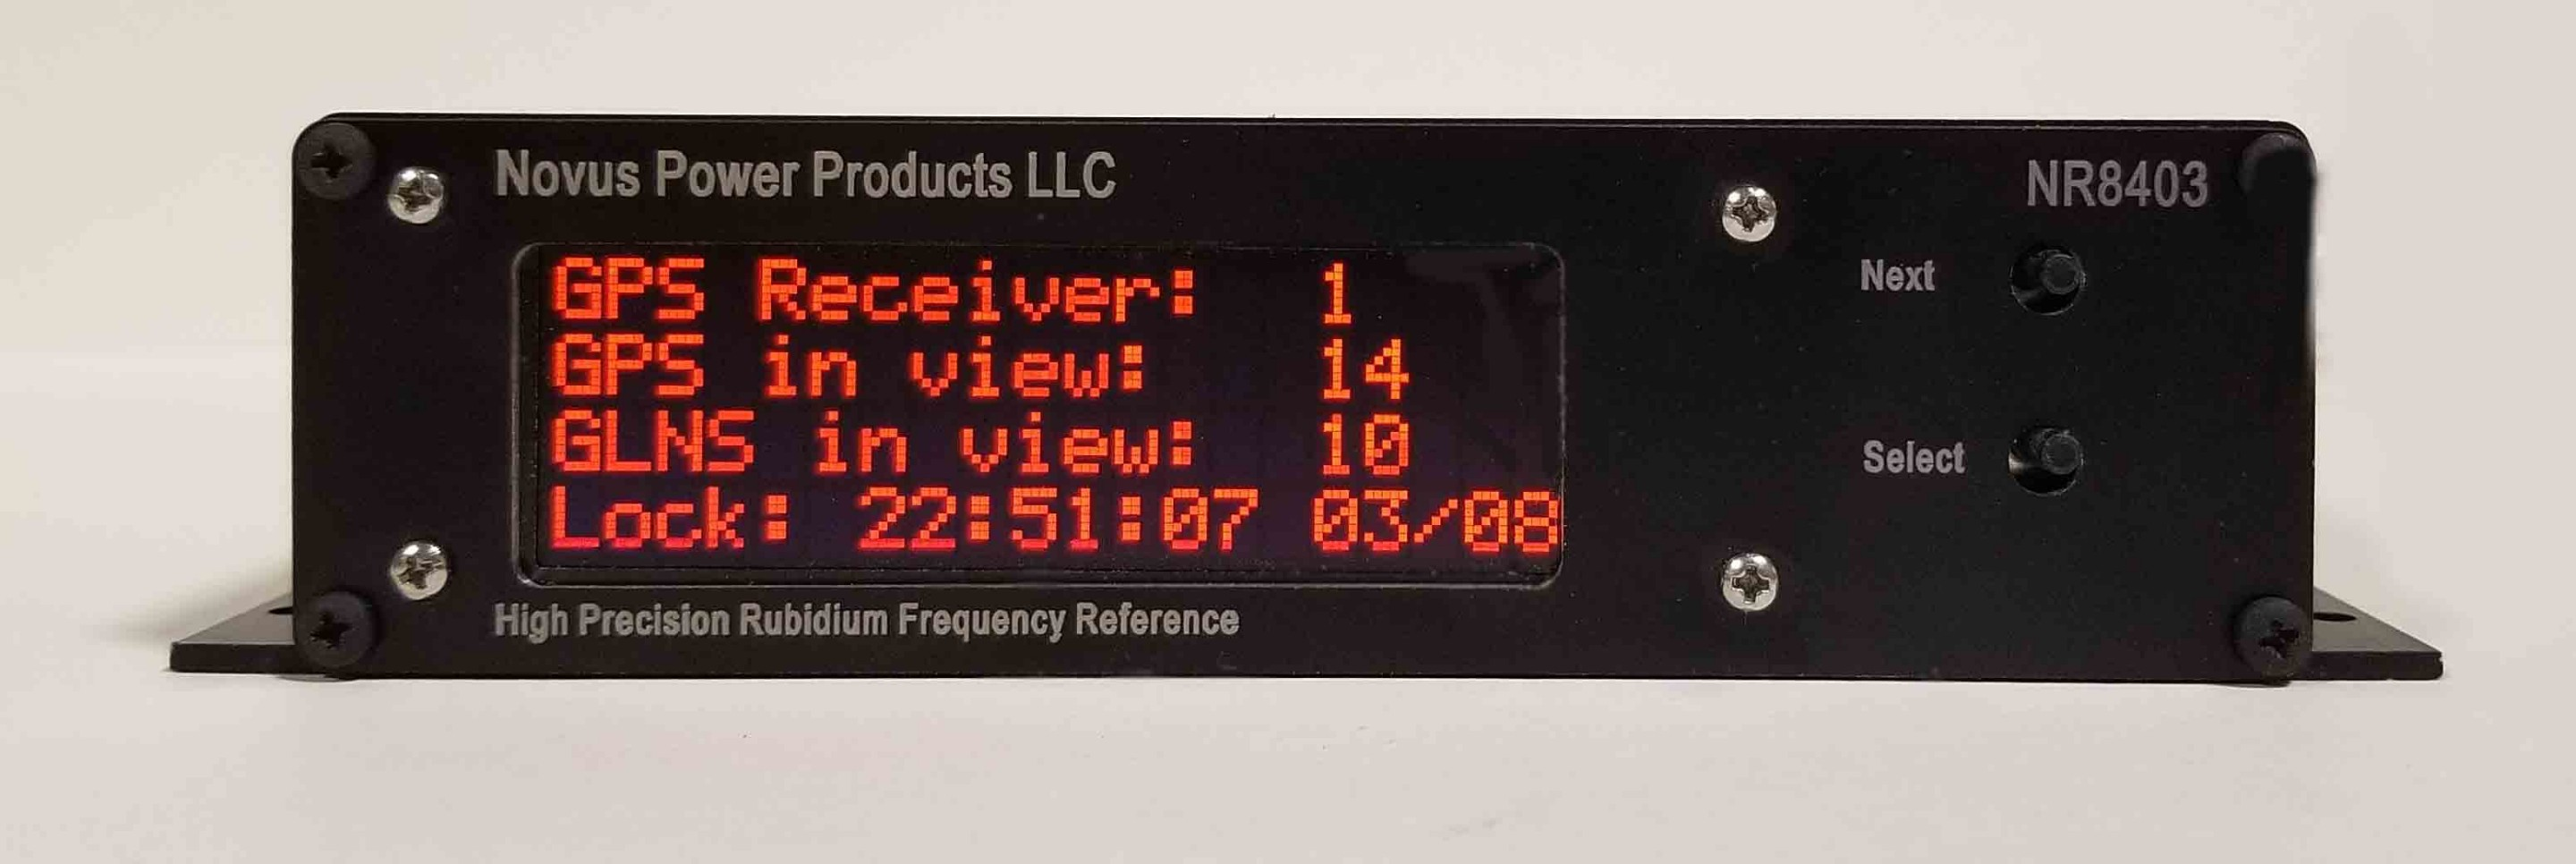 Three Channel Rubidium GNSS Locked Frequency Reference-NR8403-RG Image